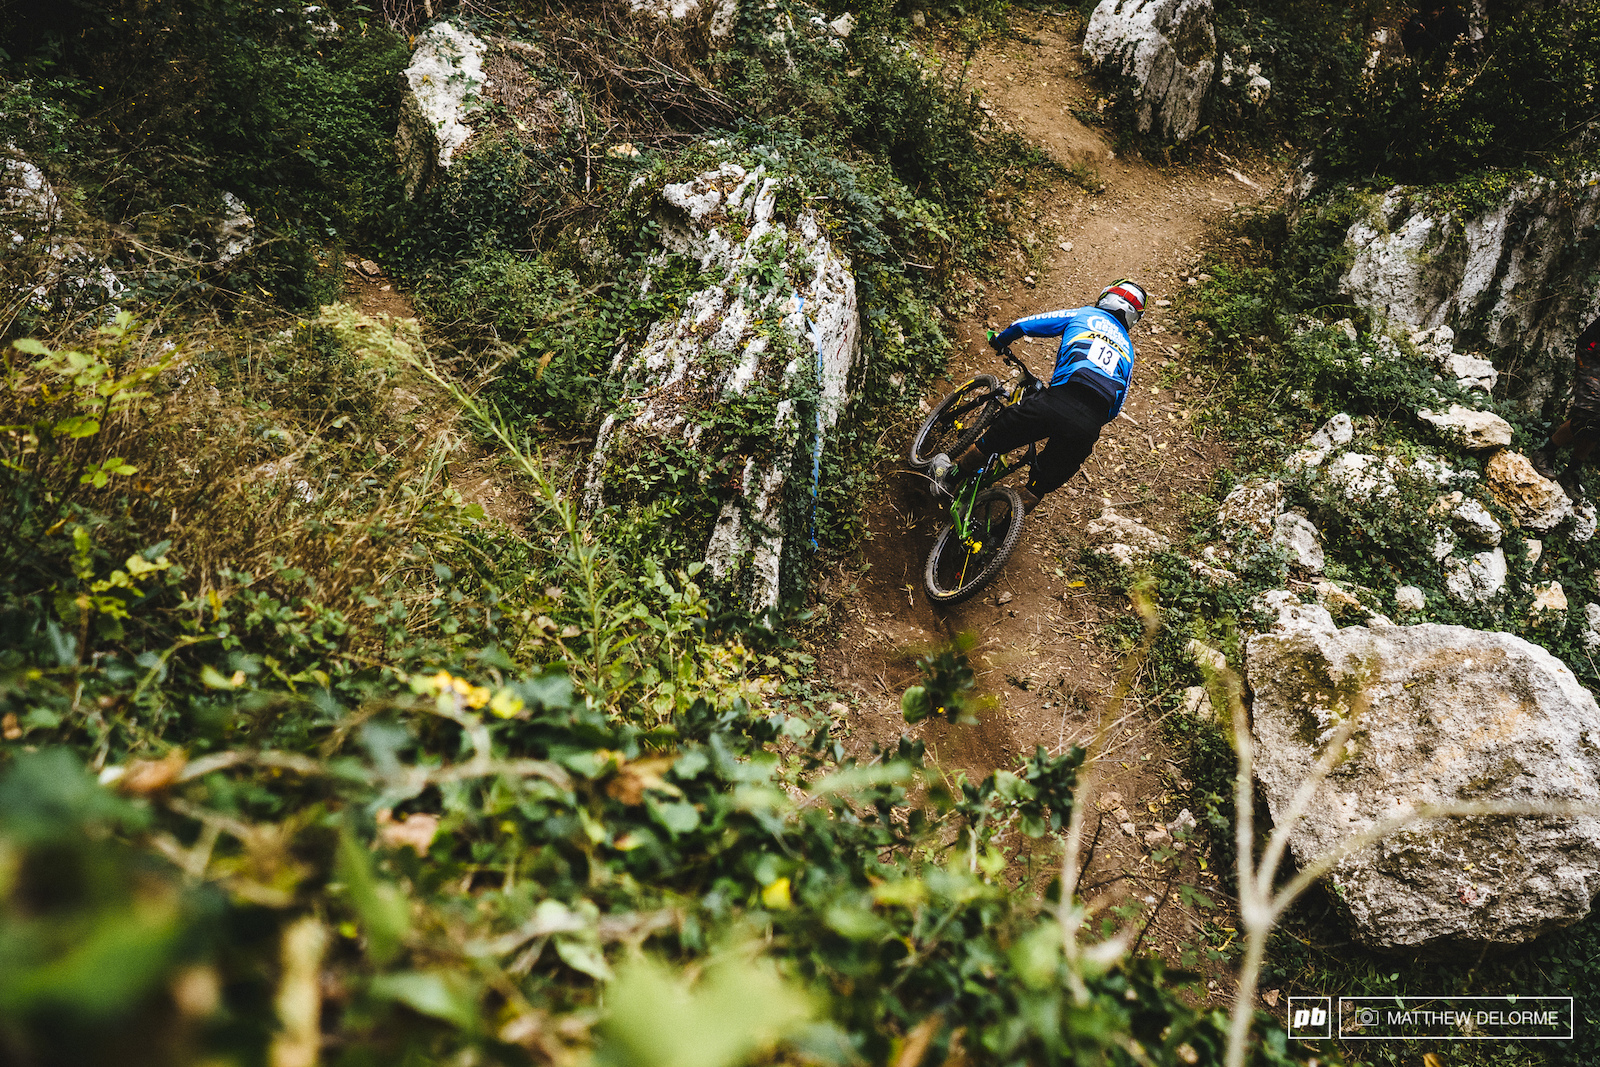 On the gas through ancient trails. Sam Hill keeps the pressure up on day two.